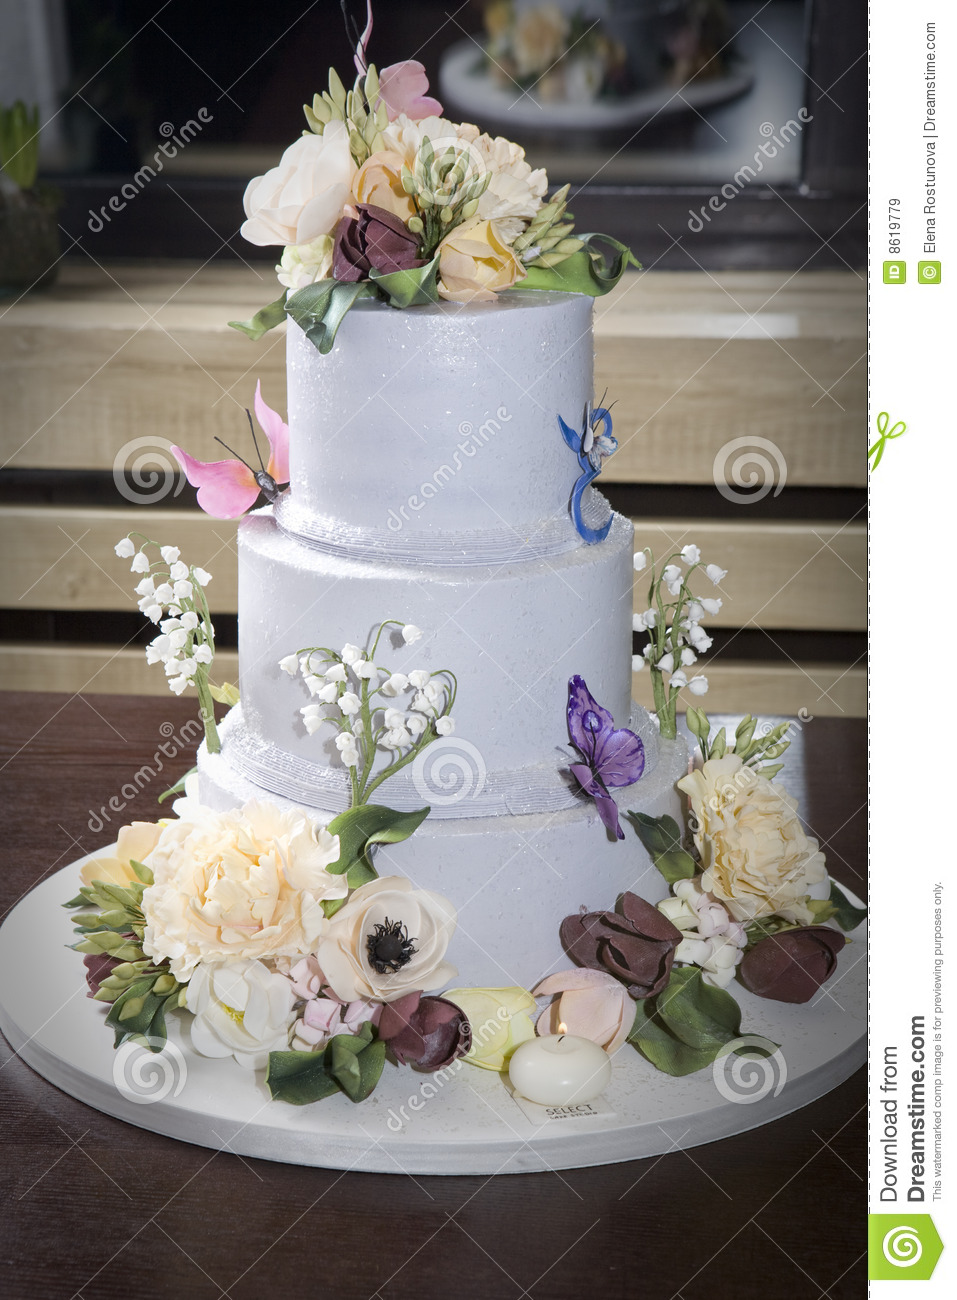 Birthday Cake With Flower Butterfly On Table Stock Image Image of